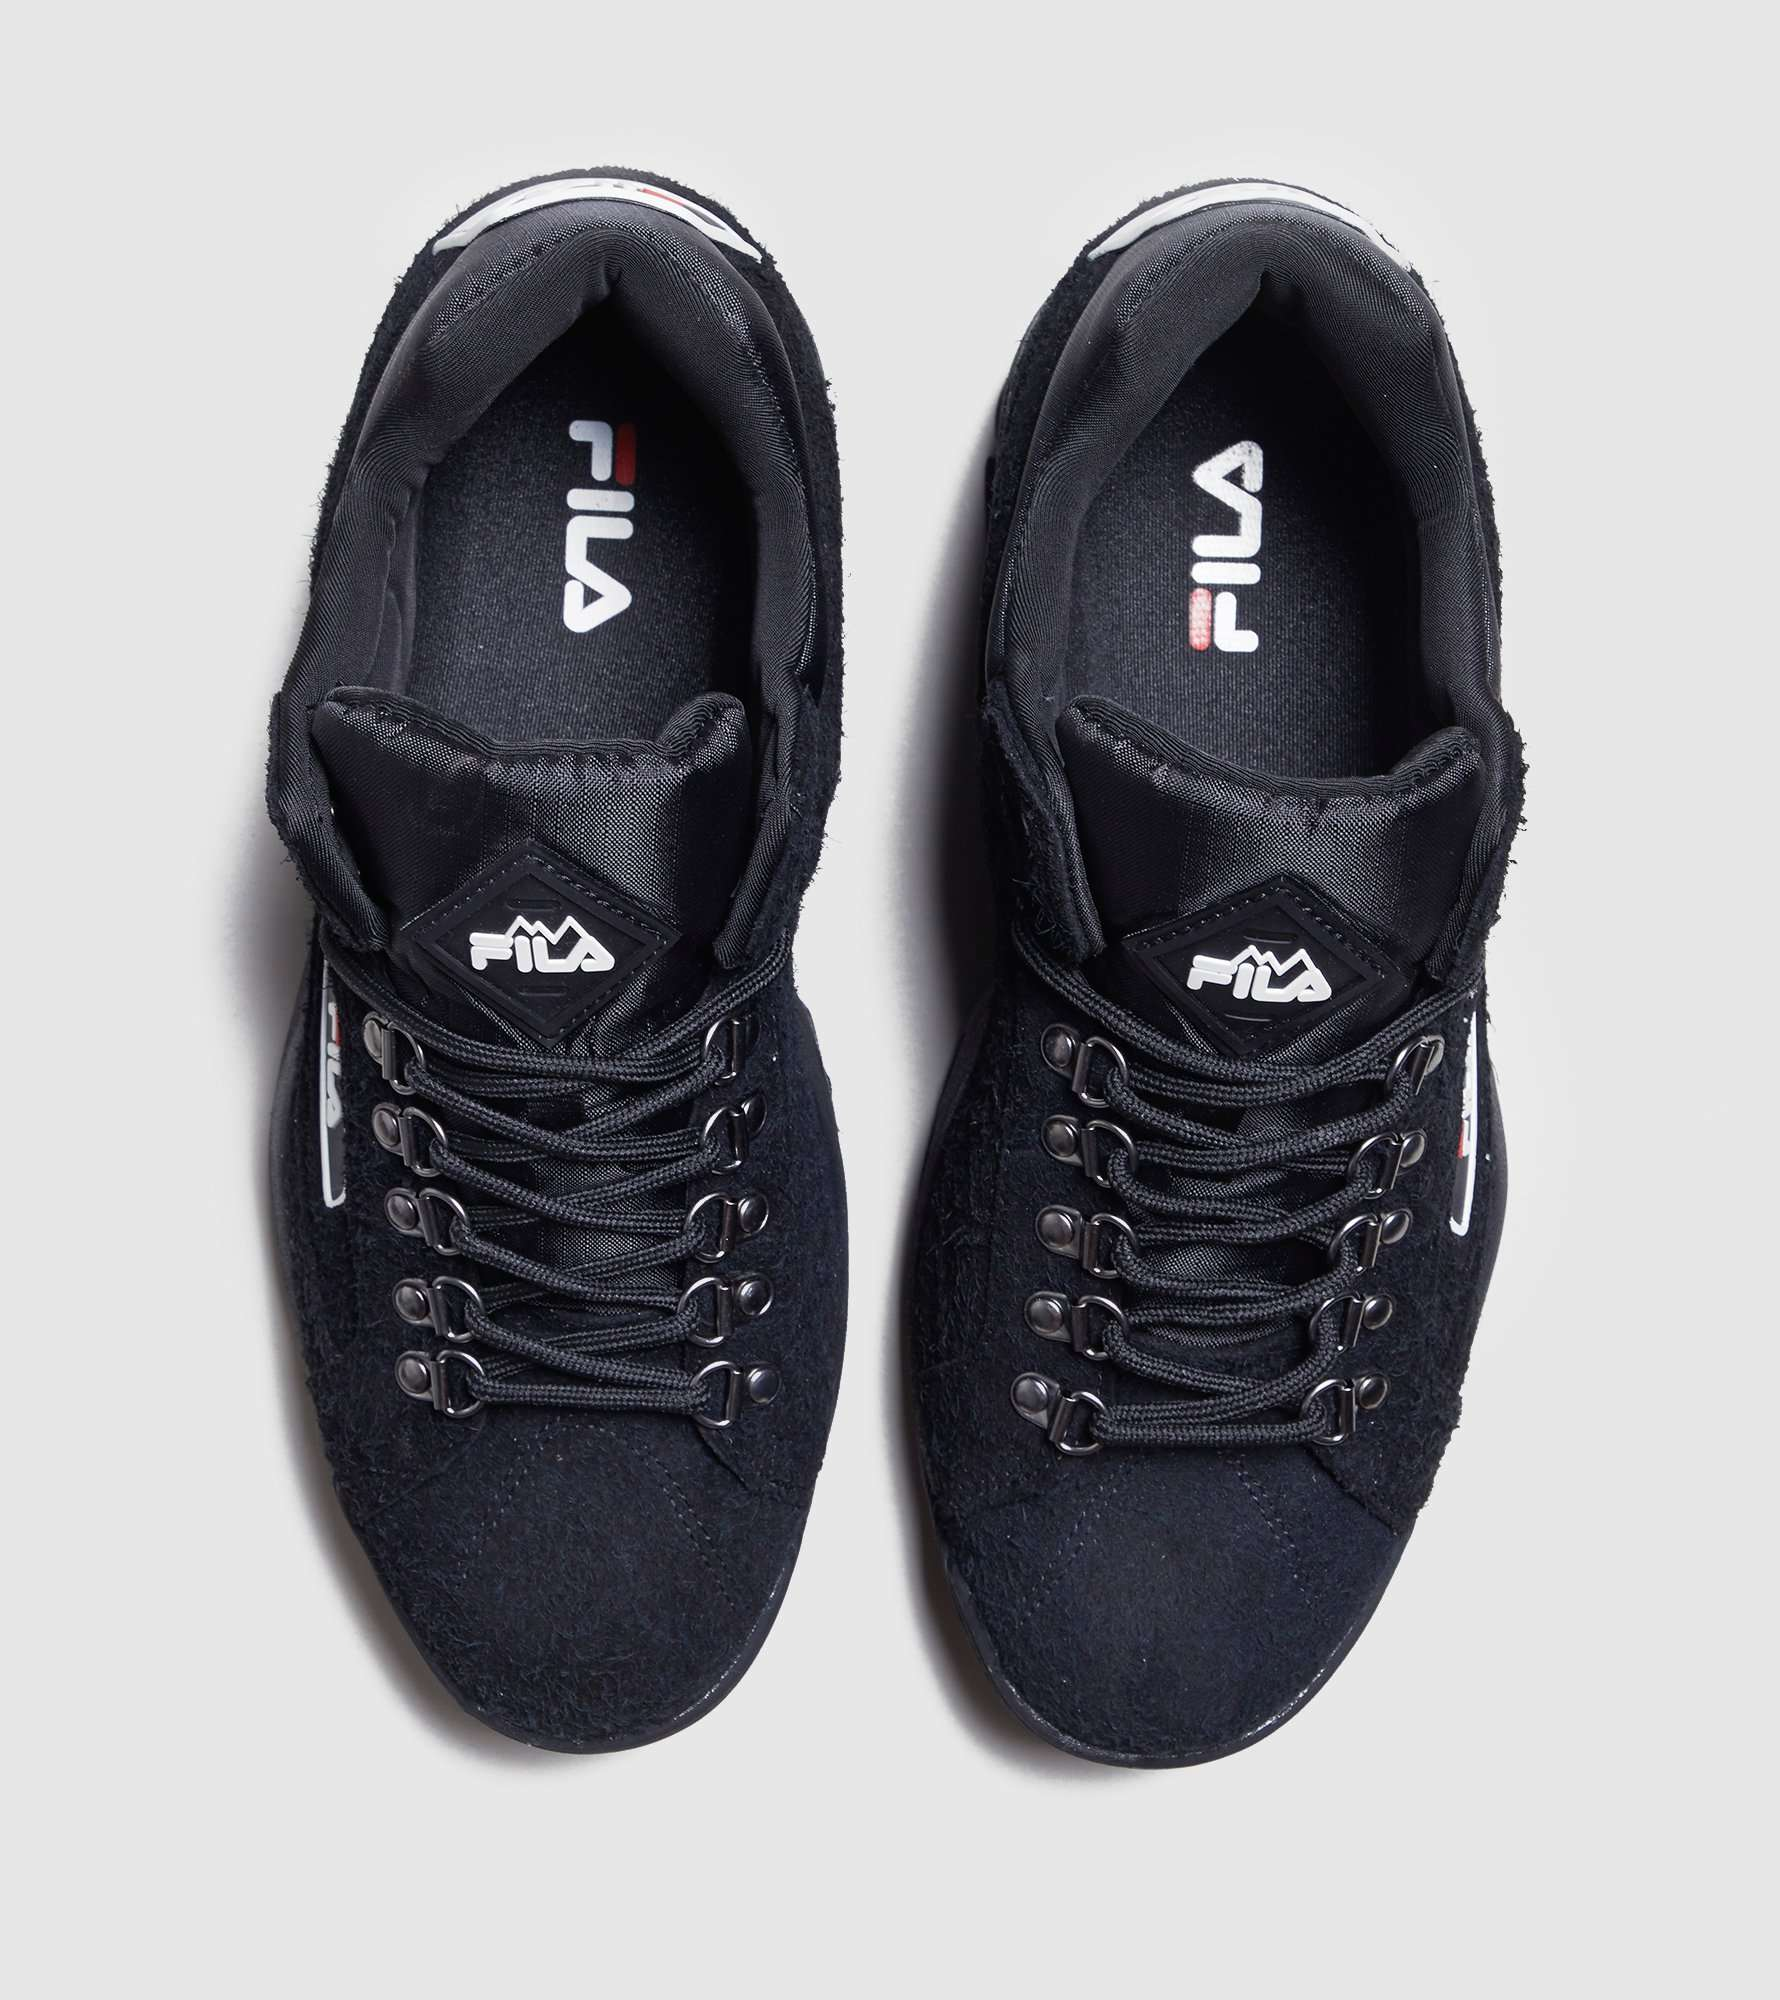 Fila Trailruptor - size? Exclusive